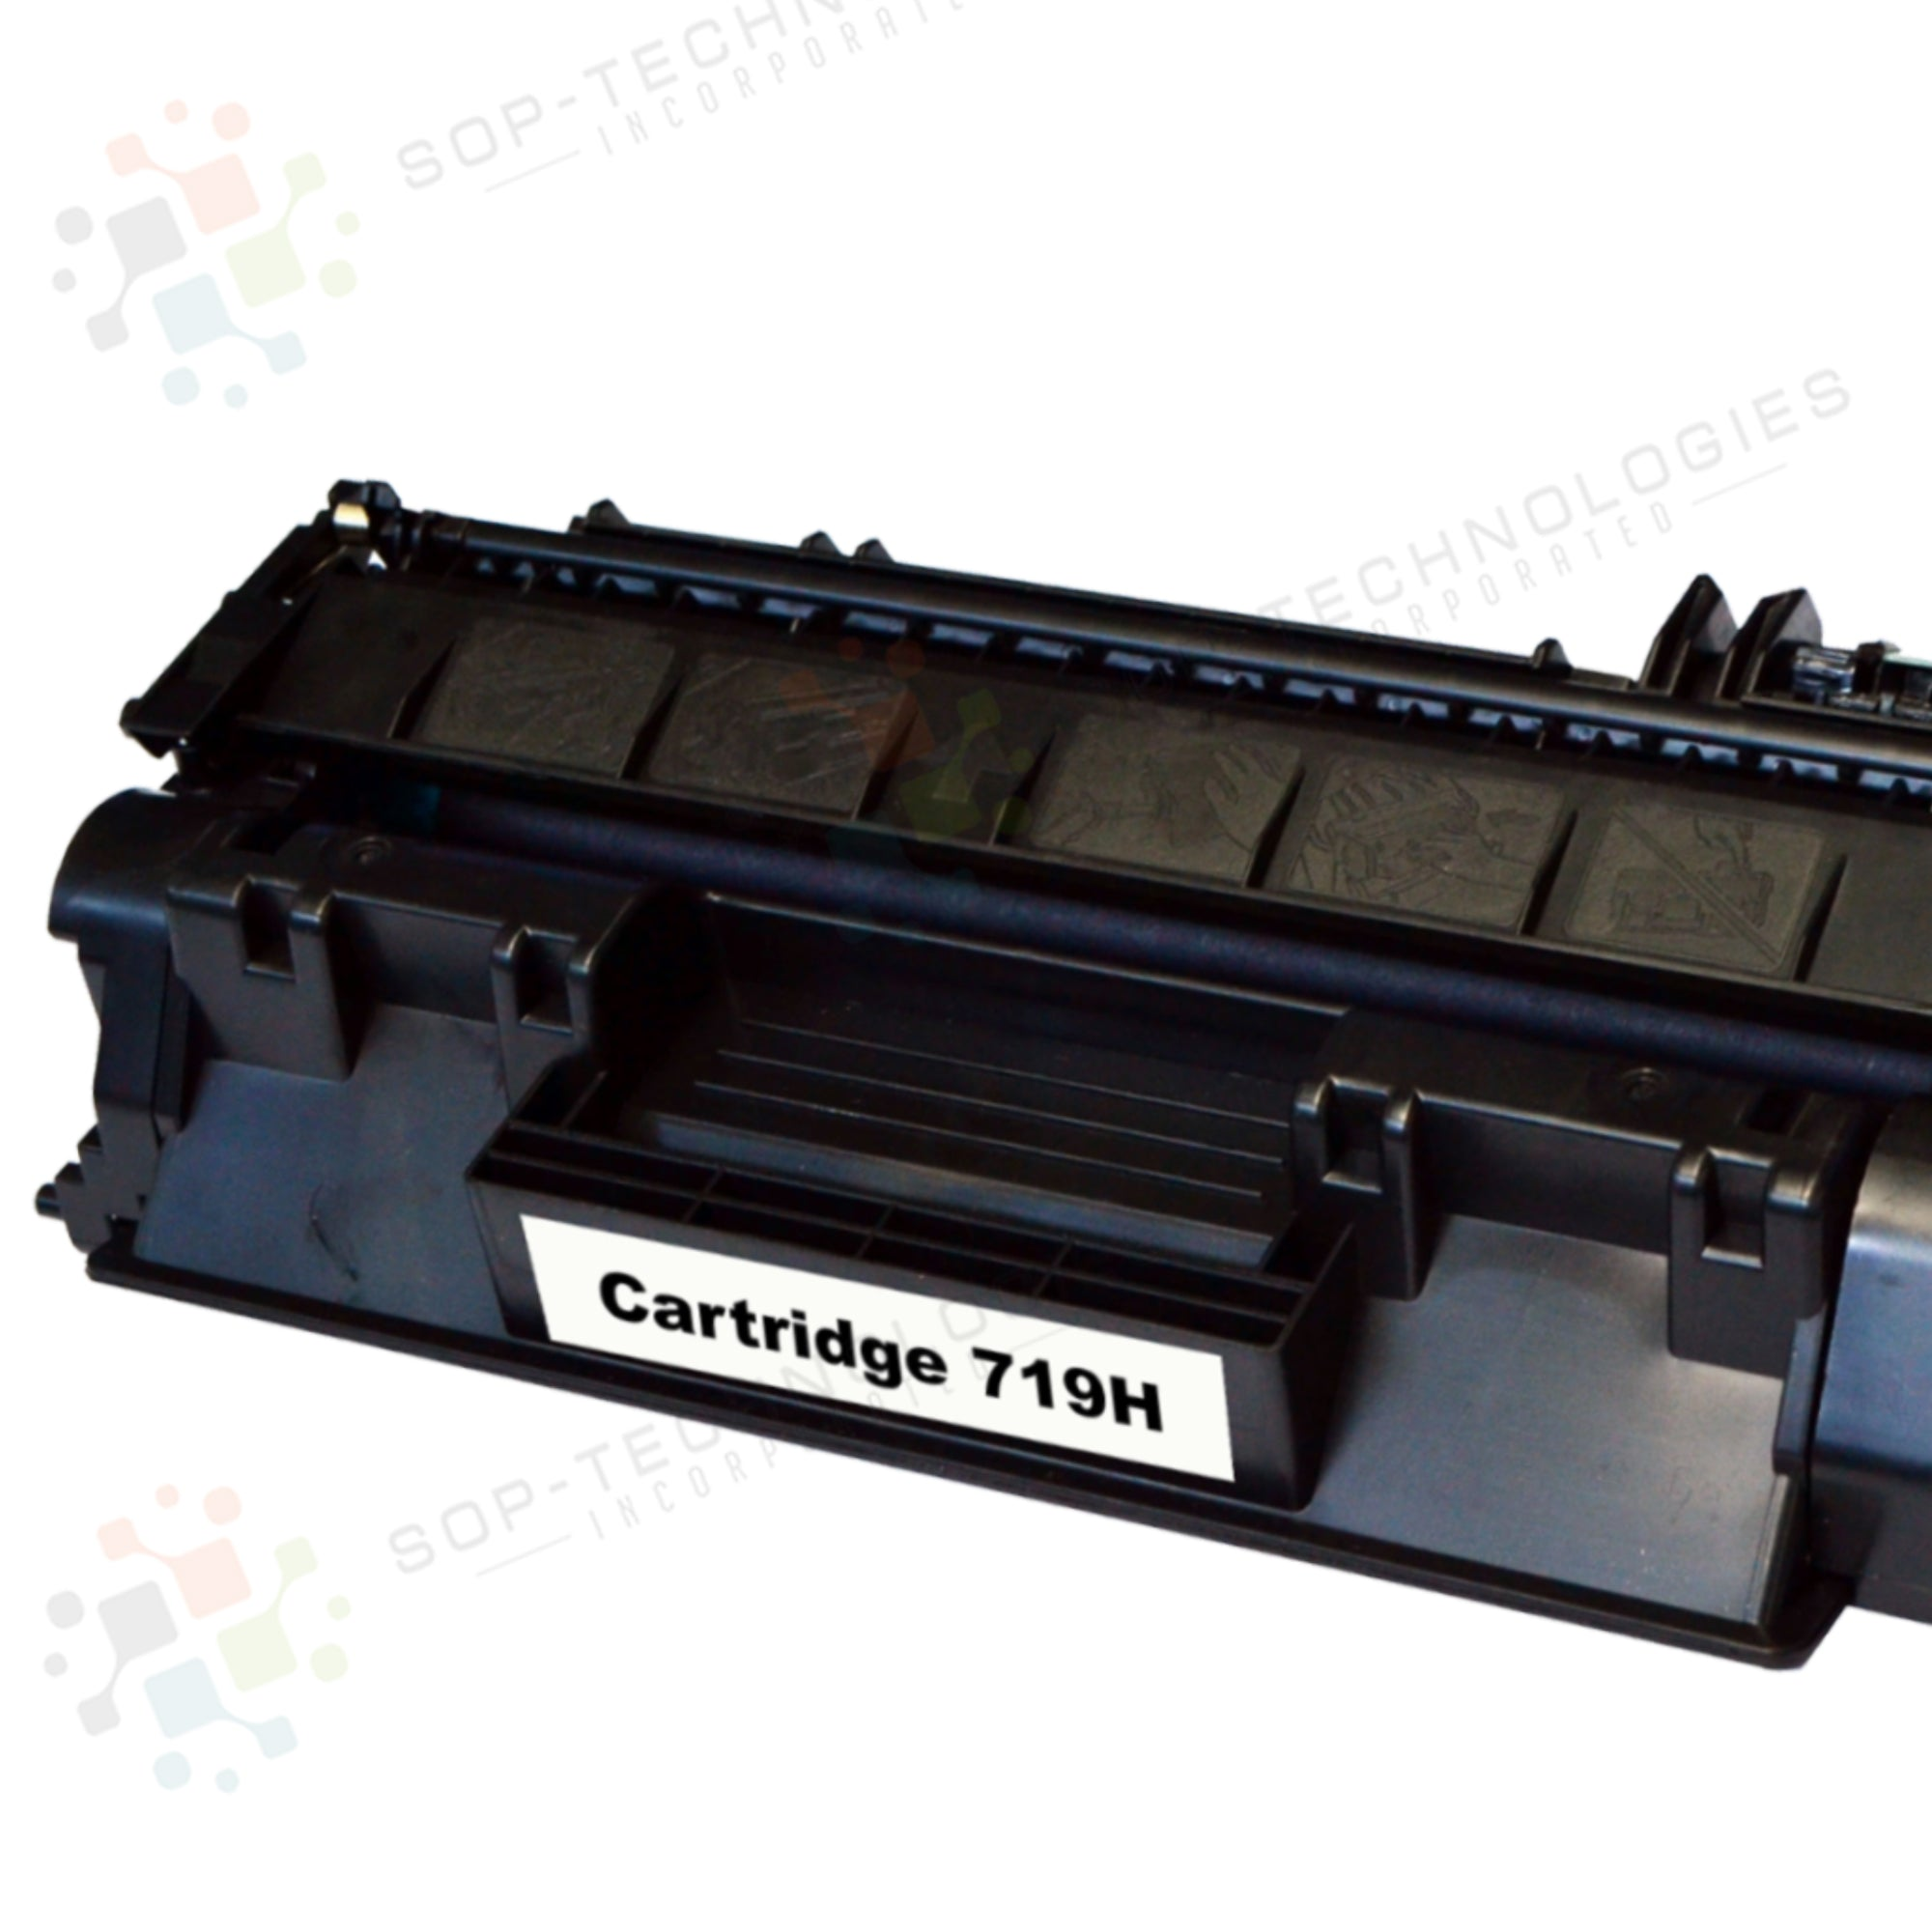 3pk Toner Cartridge Compatible Replacement  for Canon ImageClass MF5850DN - SOP-TECHNOLOGIES, INC.